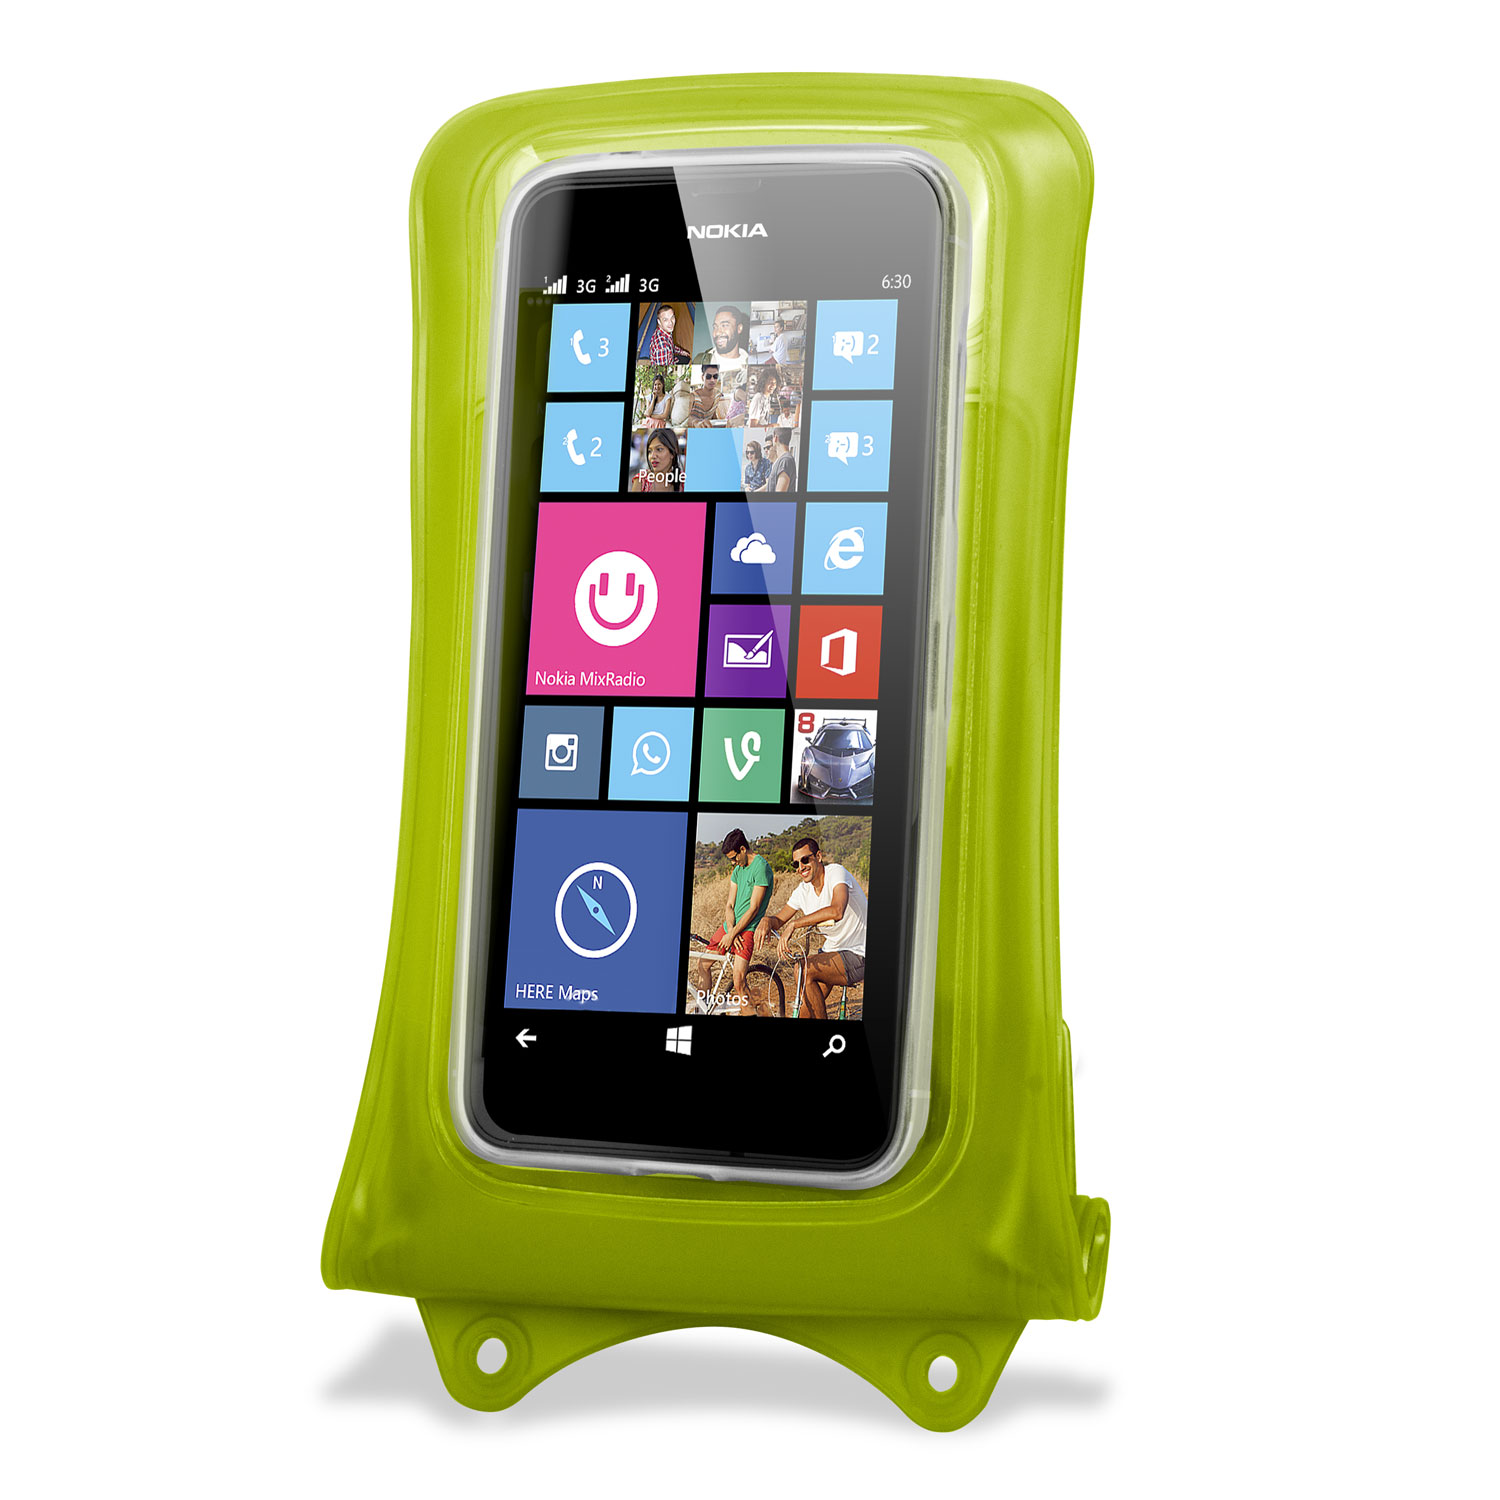 DiCAPac Universal Waterproof Case for Smartphones up to 4.8 inch - green